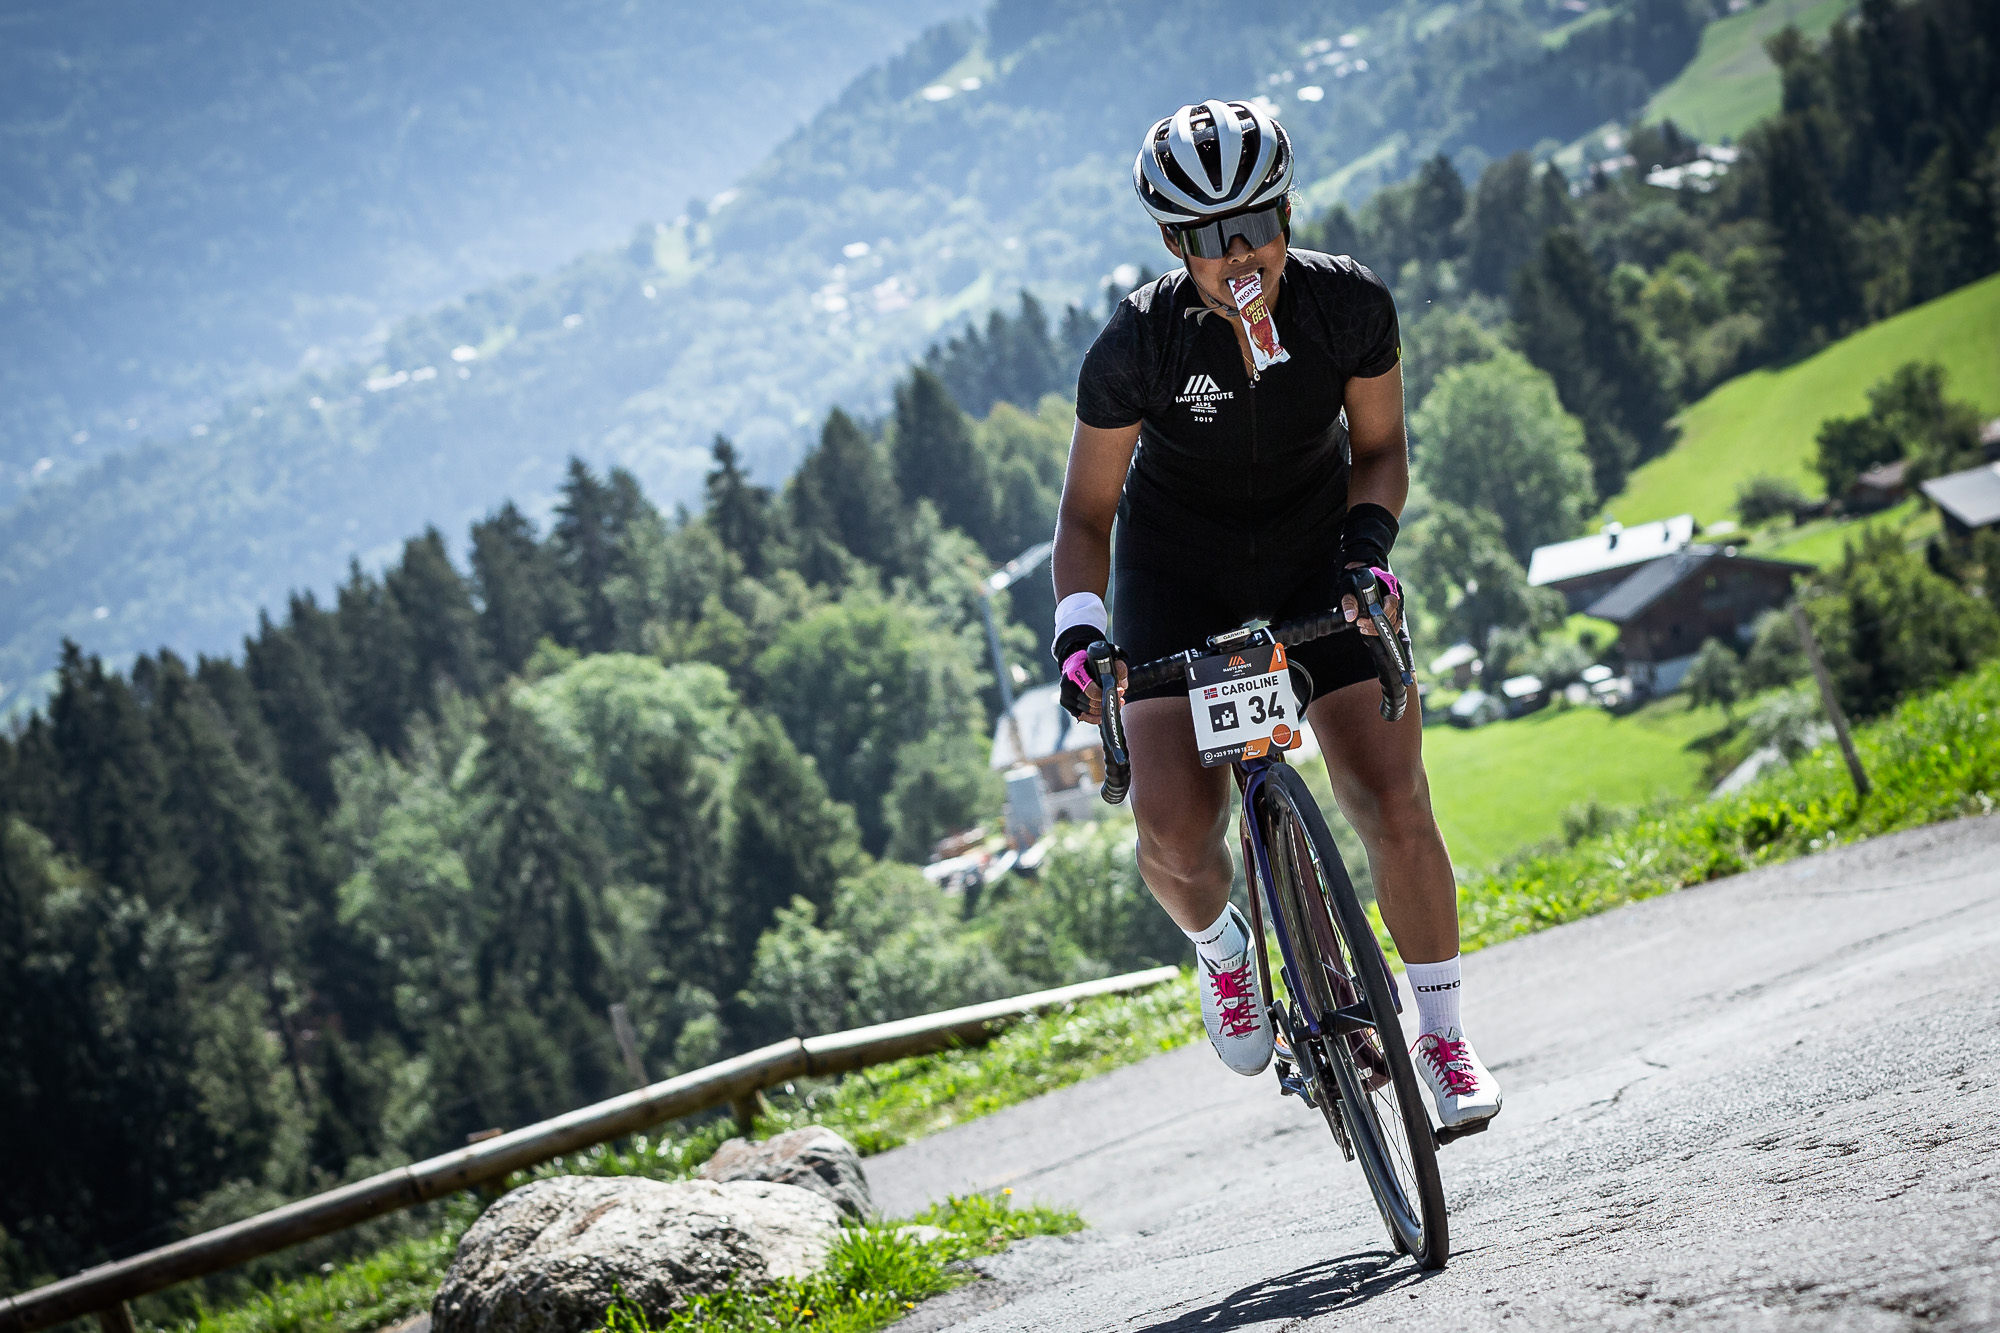 l_salino_hauteRouteAlps2_stage1190825_1053-2_2000px